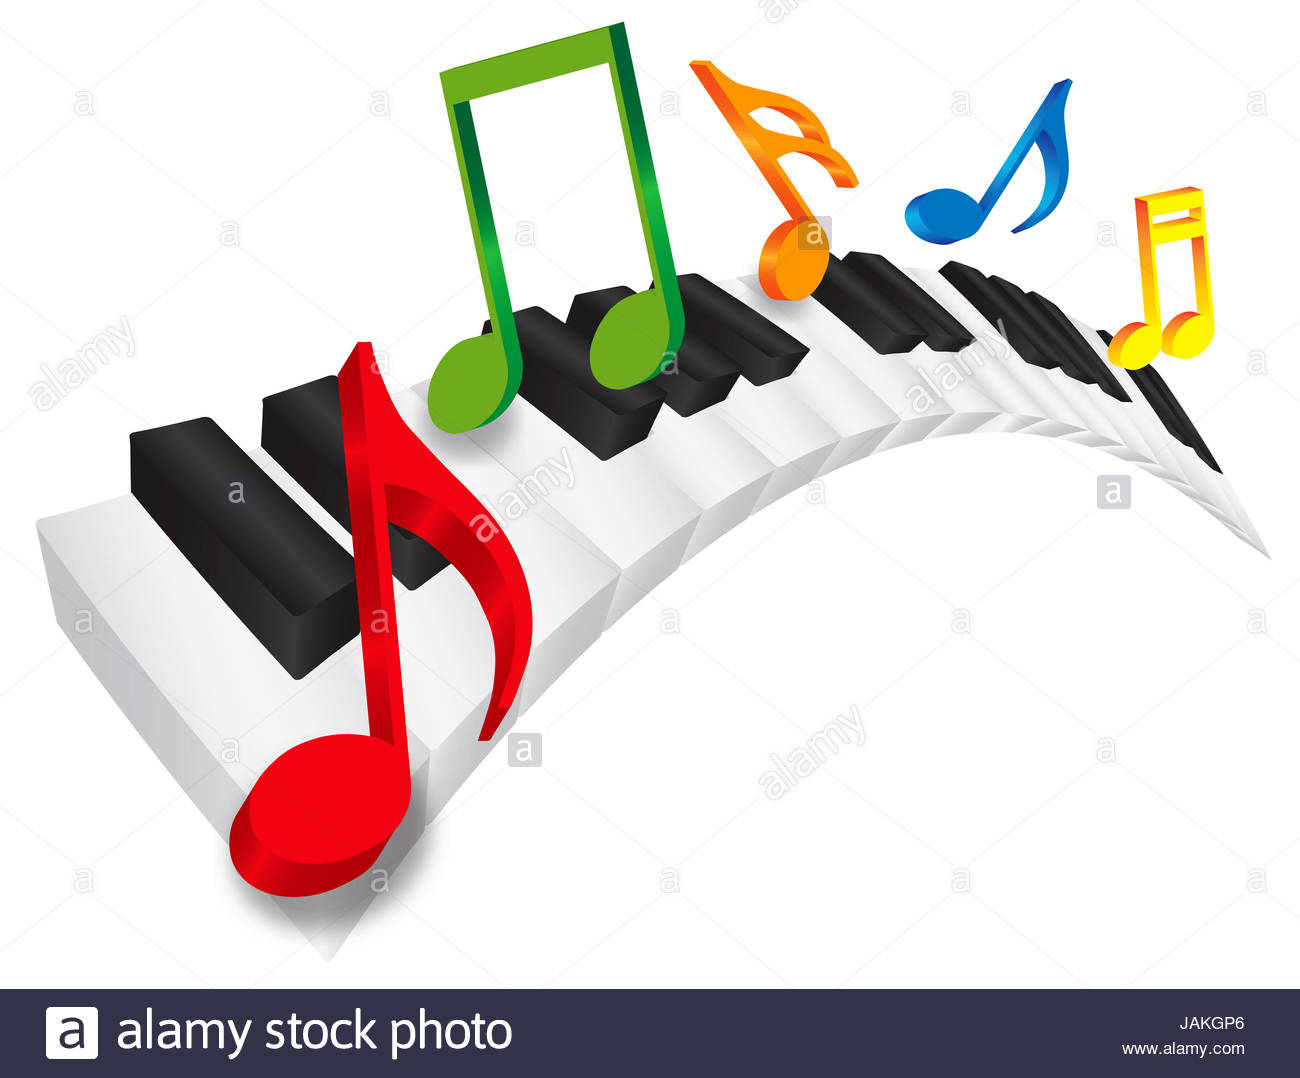 1300x1078 Piano Keyboard With Black And White Wavy Keys And Colorful Music